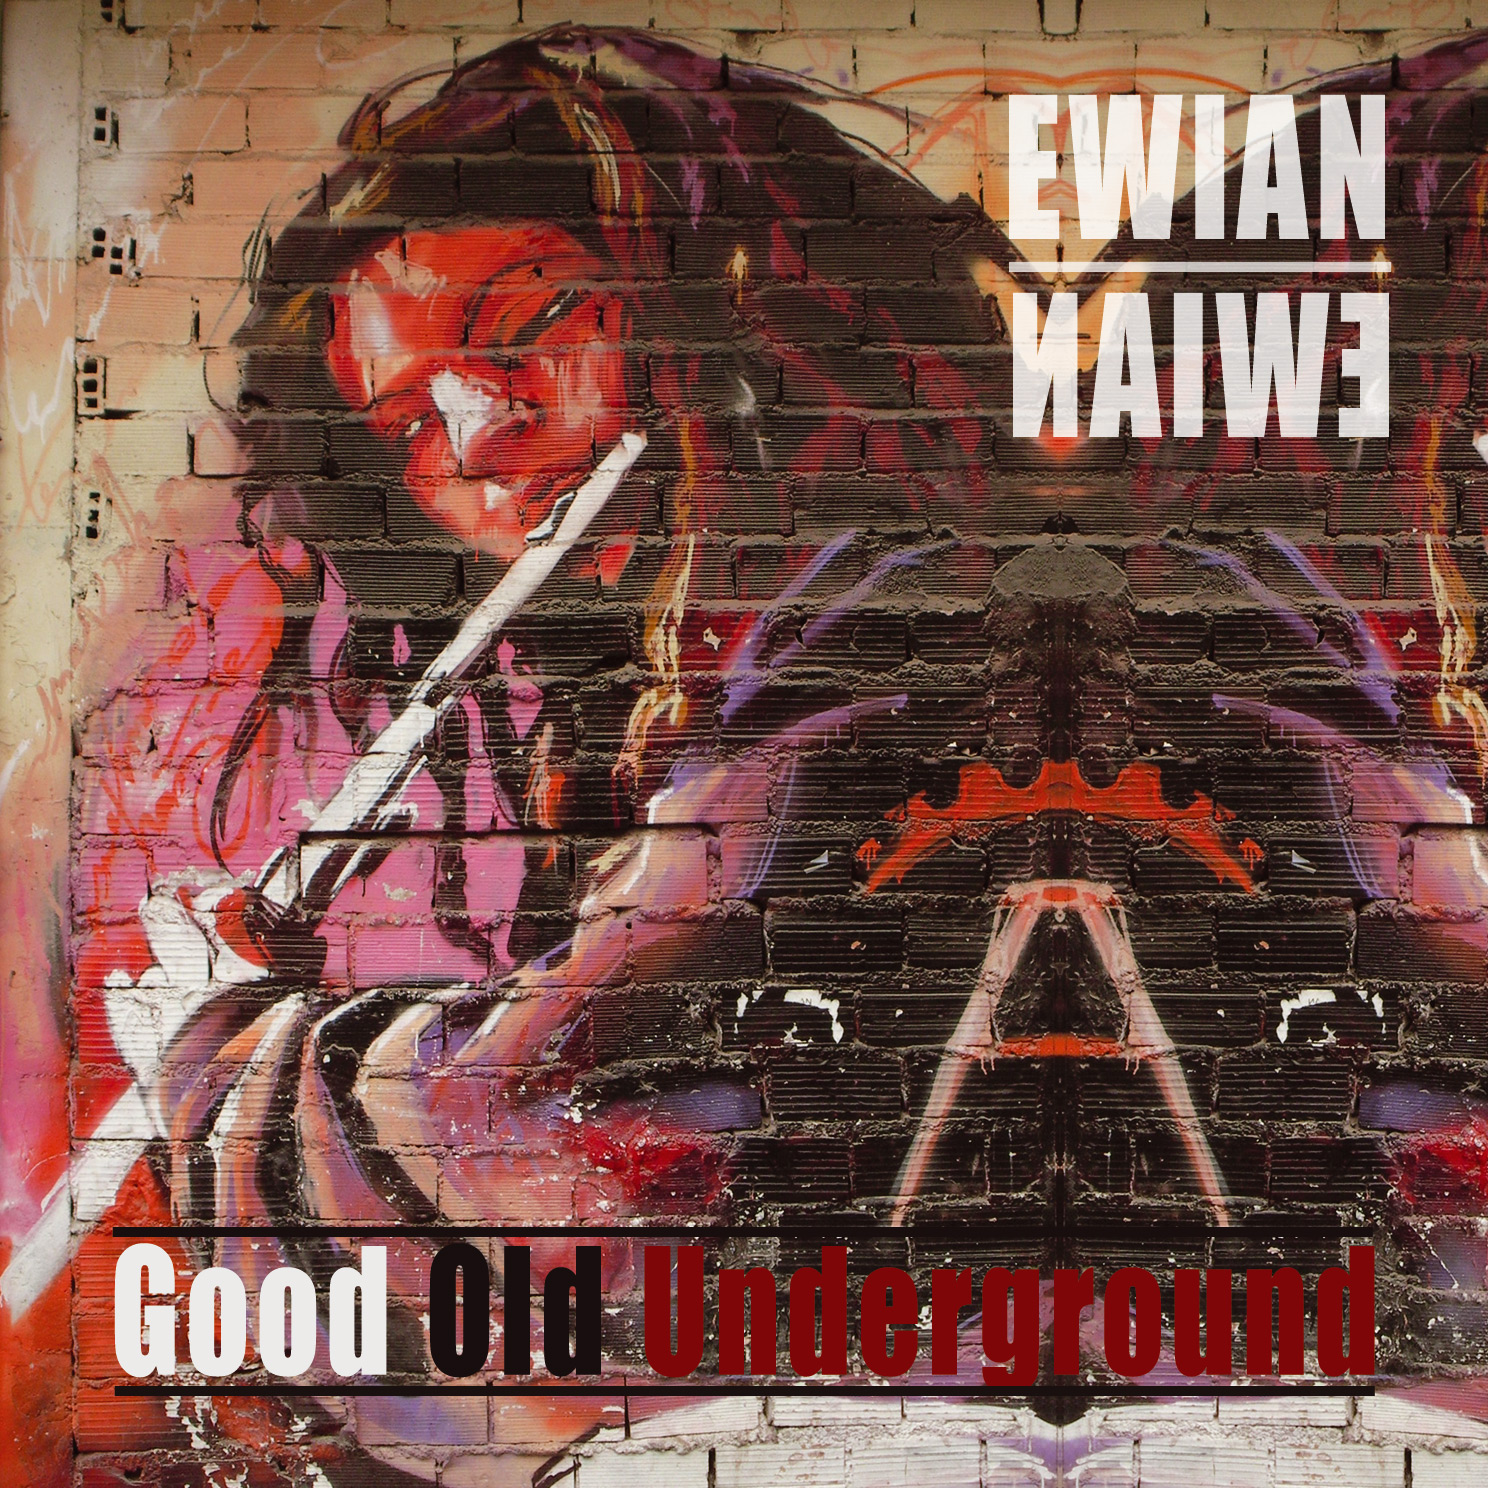 good old underground ewian one standing review